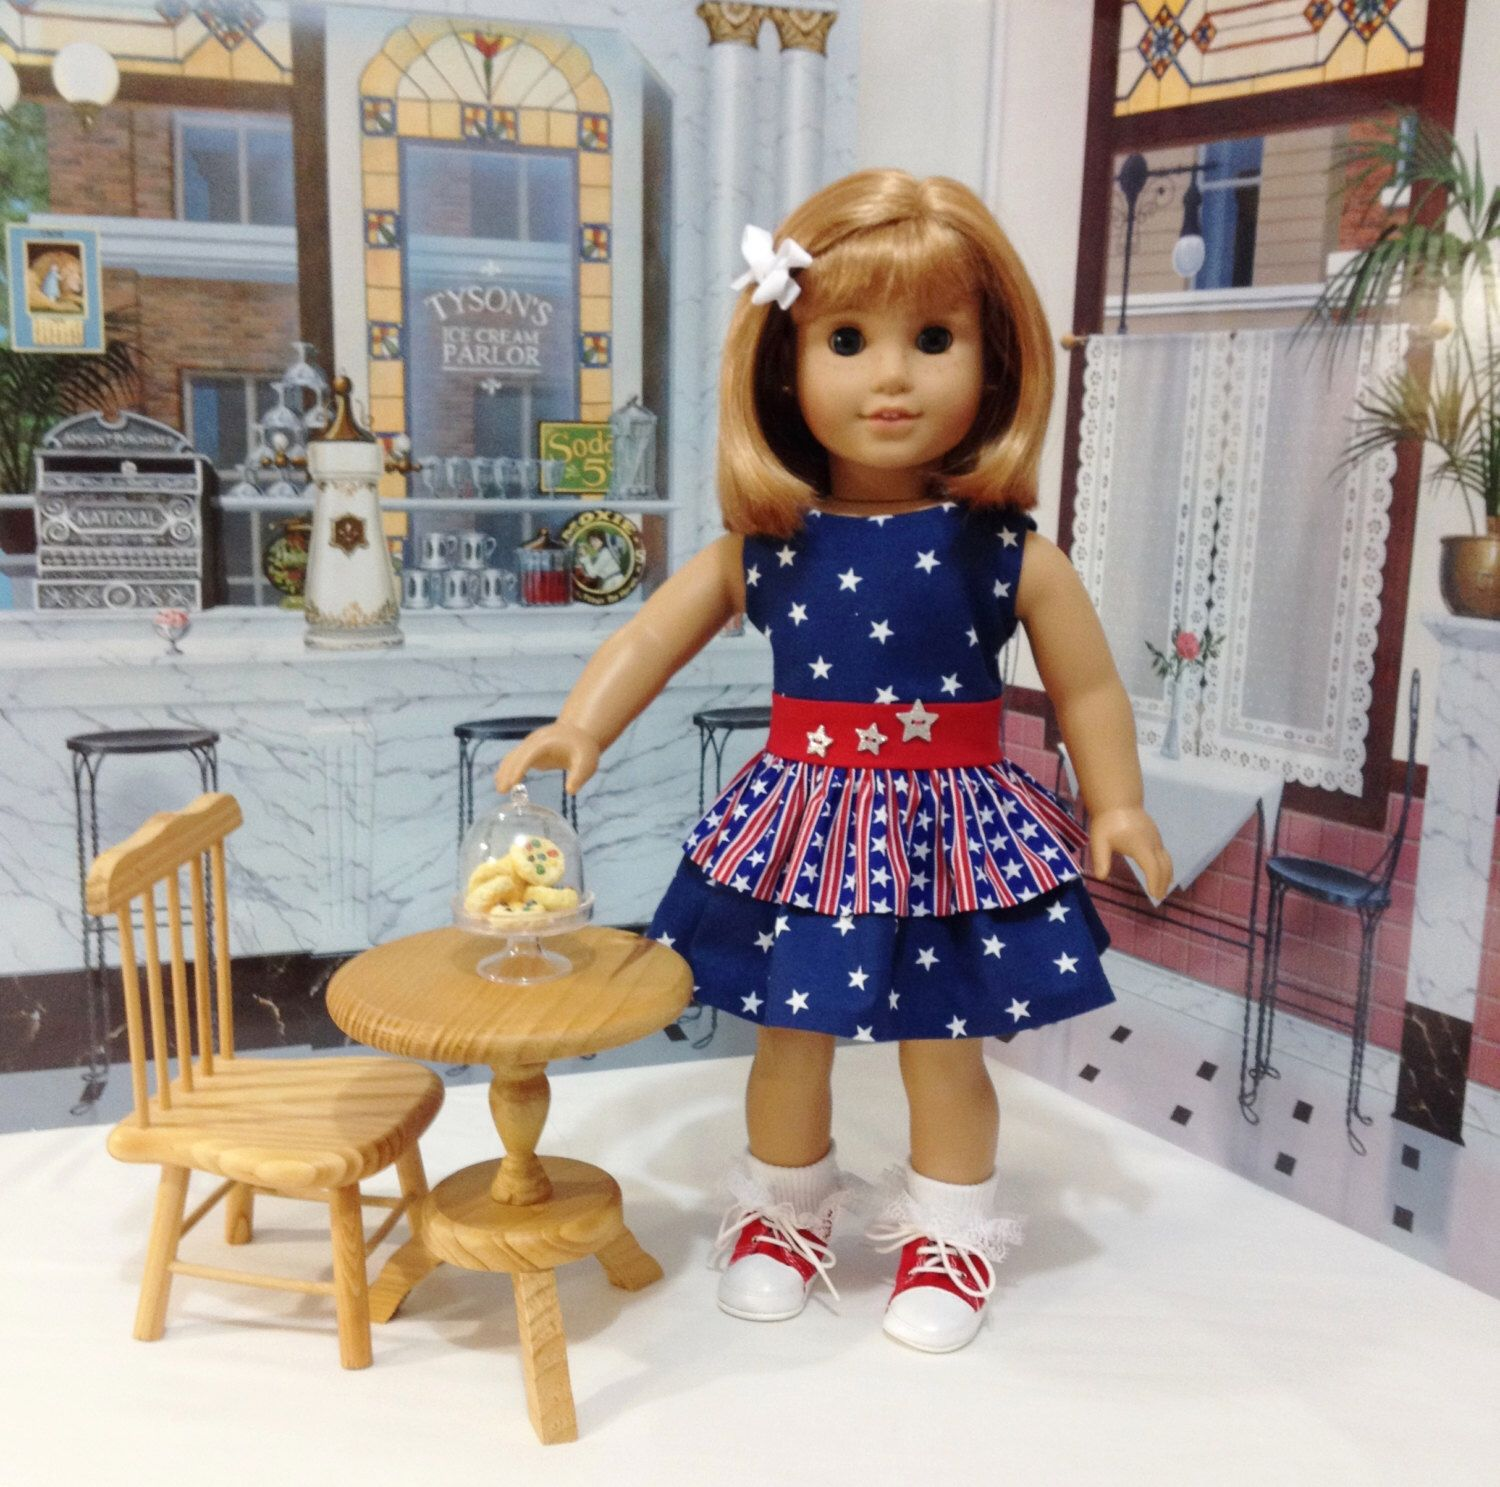 """ON Sale AG patriotic dress """"Stars and Stripes""""  fits American girl and other similar 18 inch dolls by craftymagaw on Etsy https://www.etsy.com/uk/listing/398174771/on-sale-ag-patriotic-dress-stars-and"""